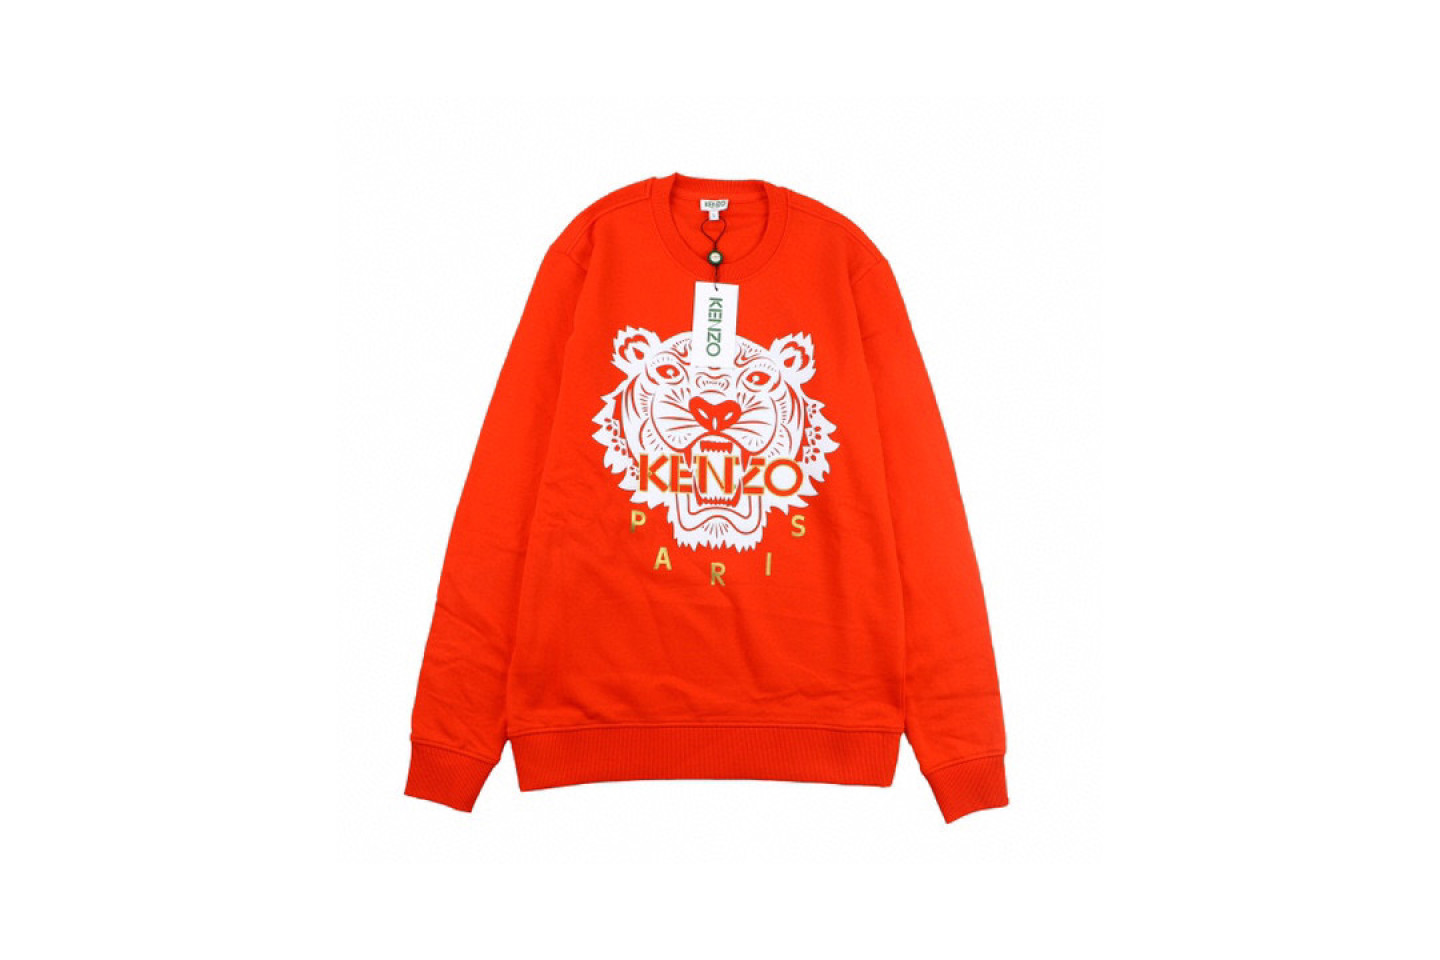 Shirt Genuine kenzo black gold and red tiger head sweater 1 genuine_kenzo_black_gold_and_red_tiger_head_sweater_1